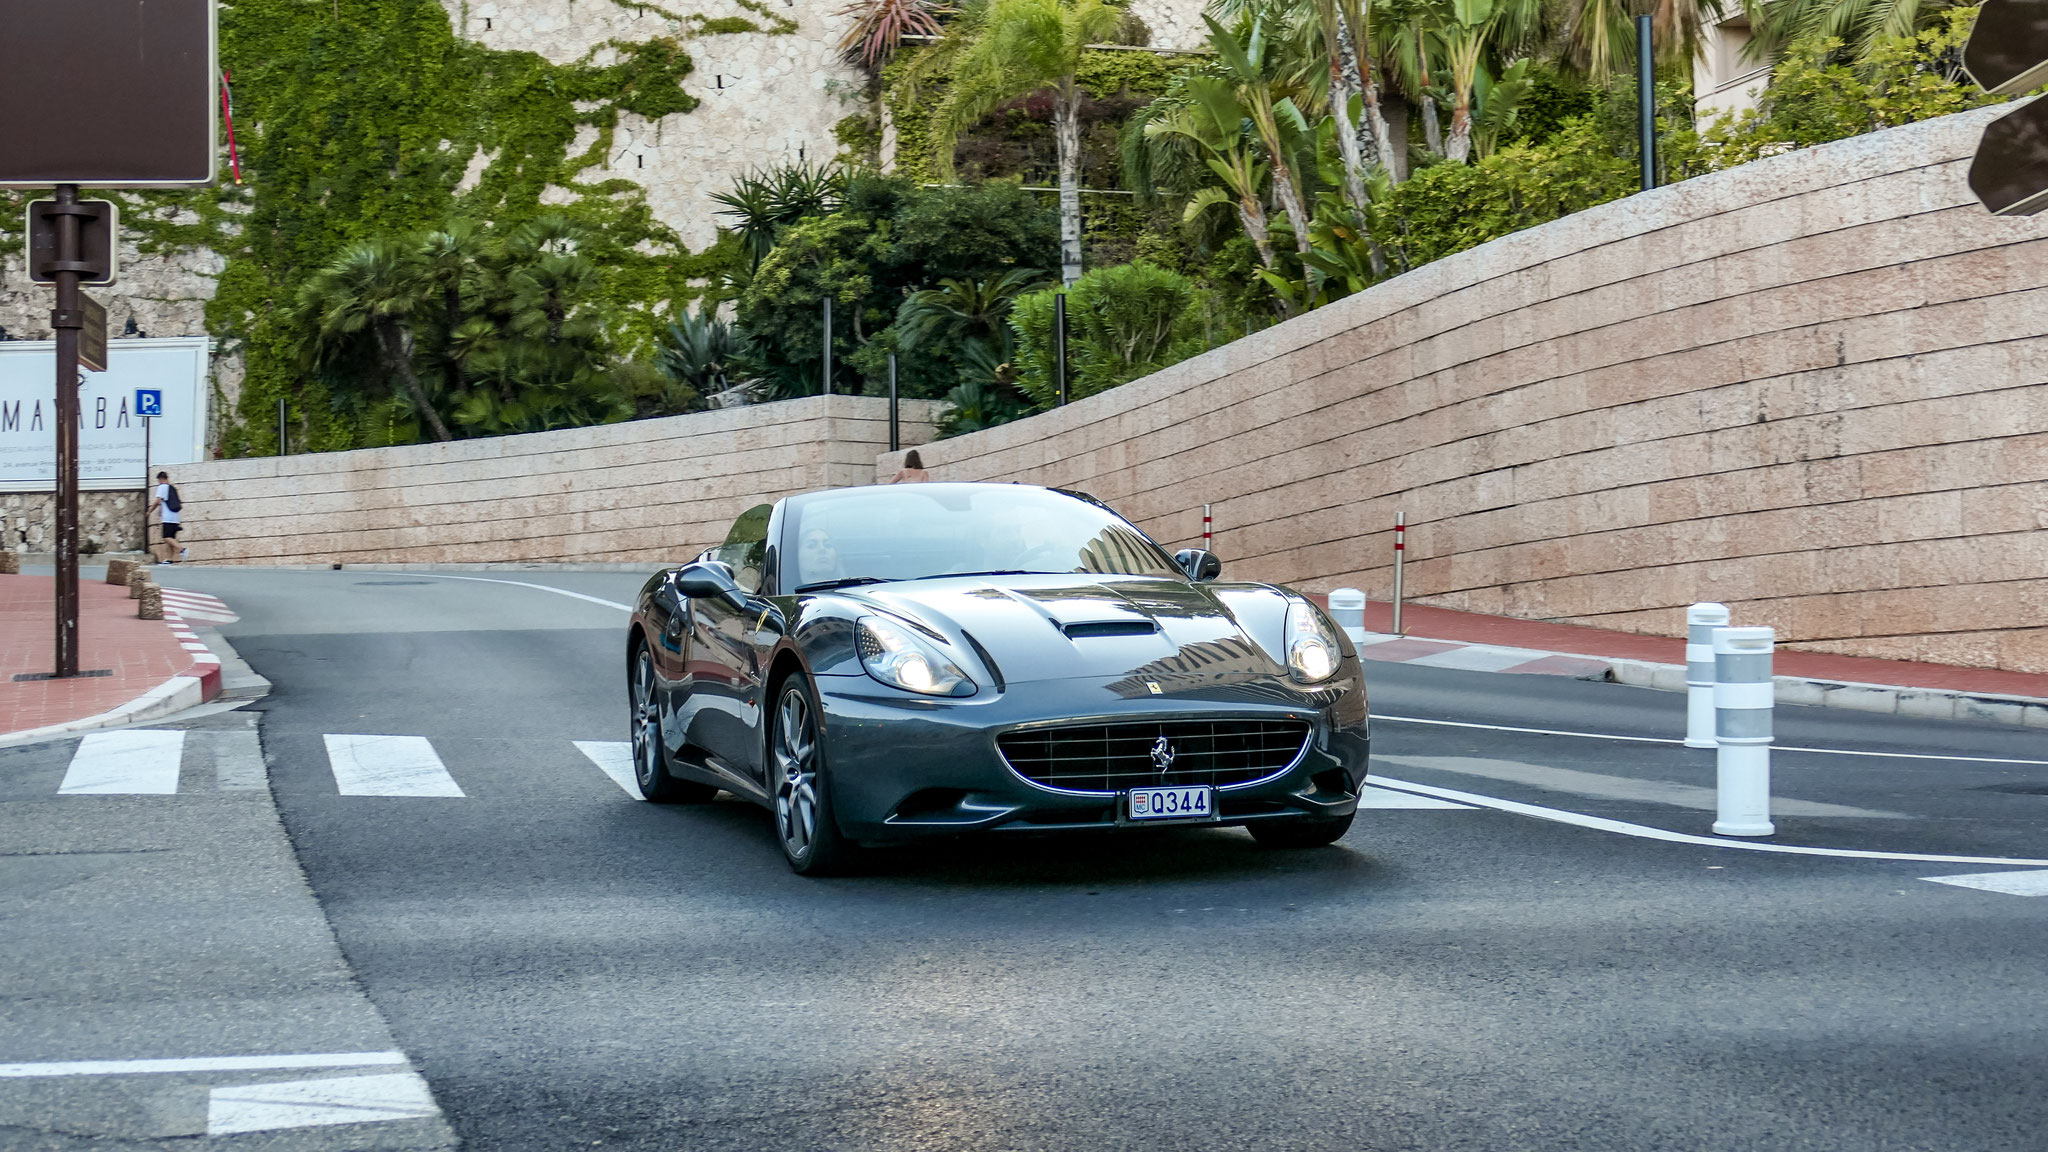 Ferrari California - Q344 (MC)